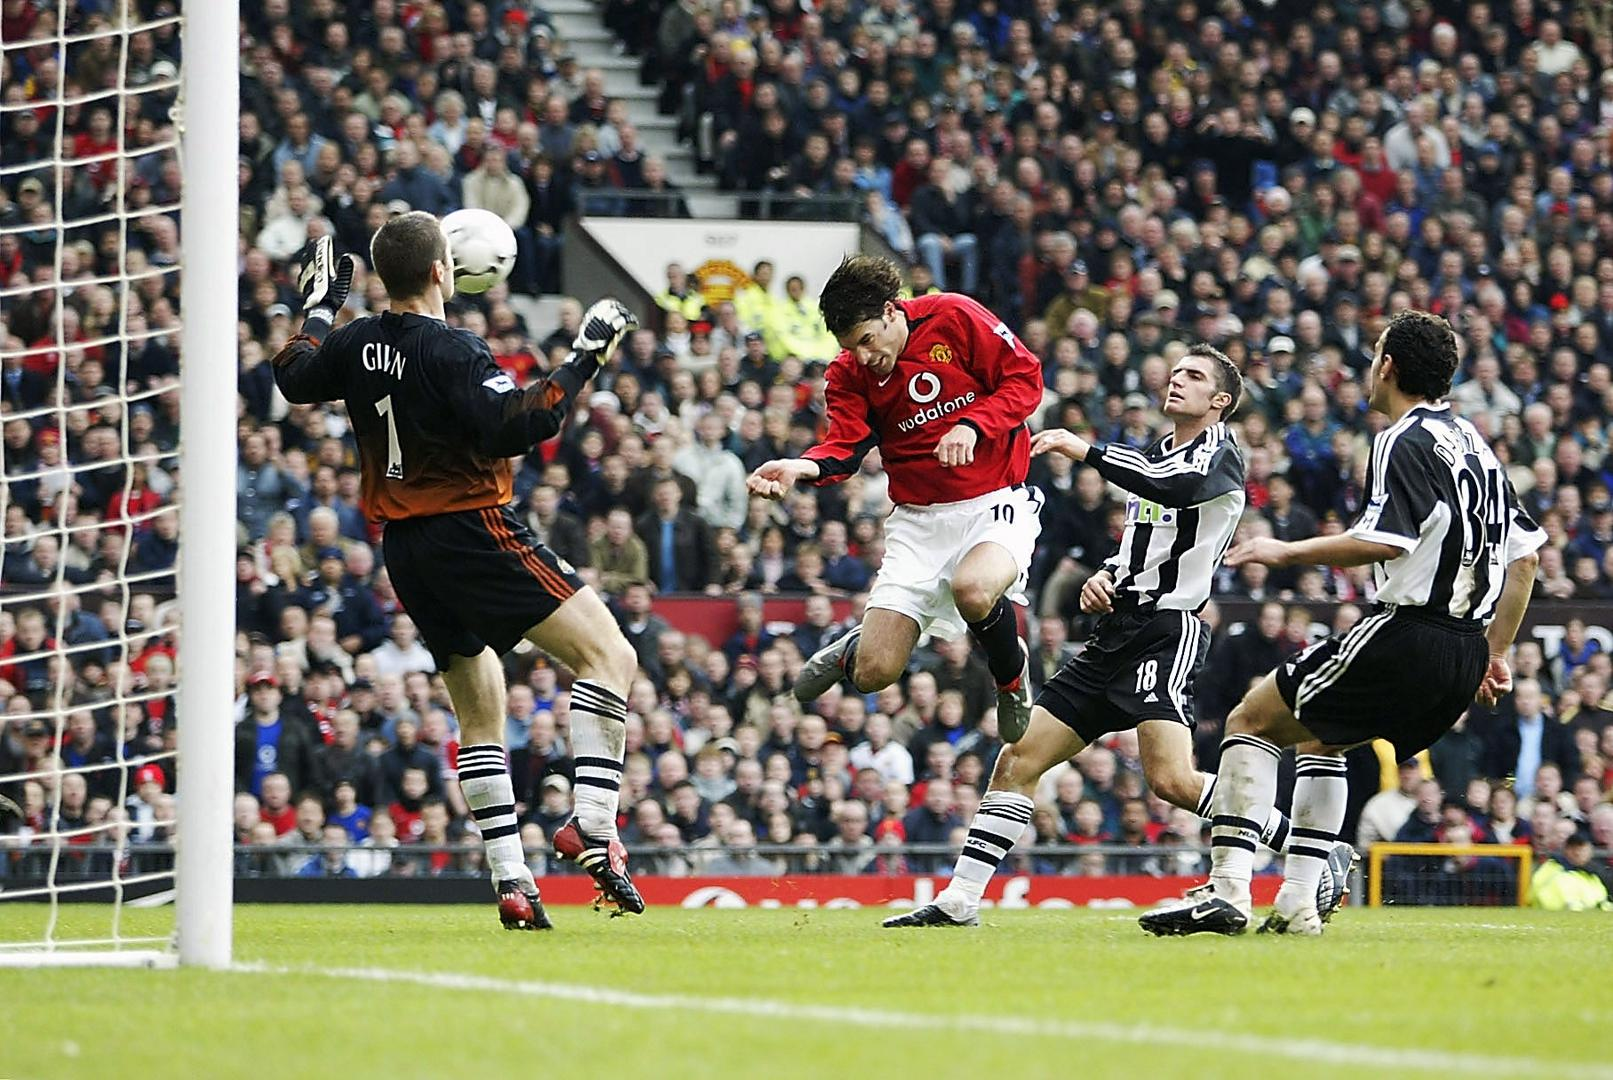 Ruud van Nistelrooy scores a header against Newcastle